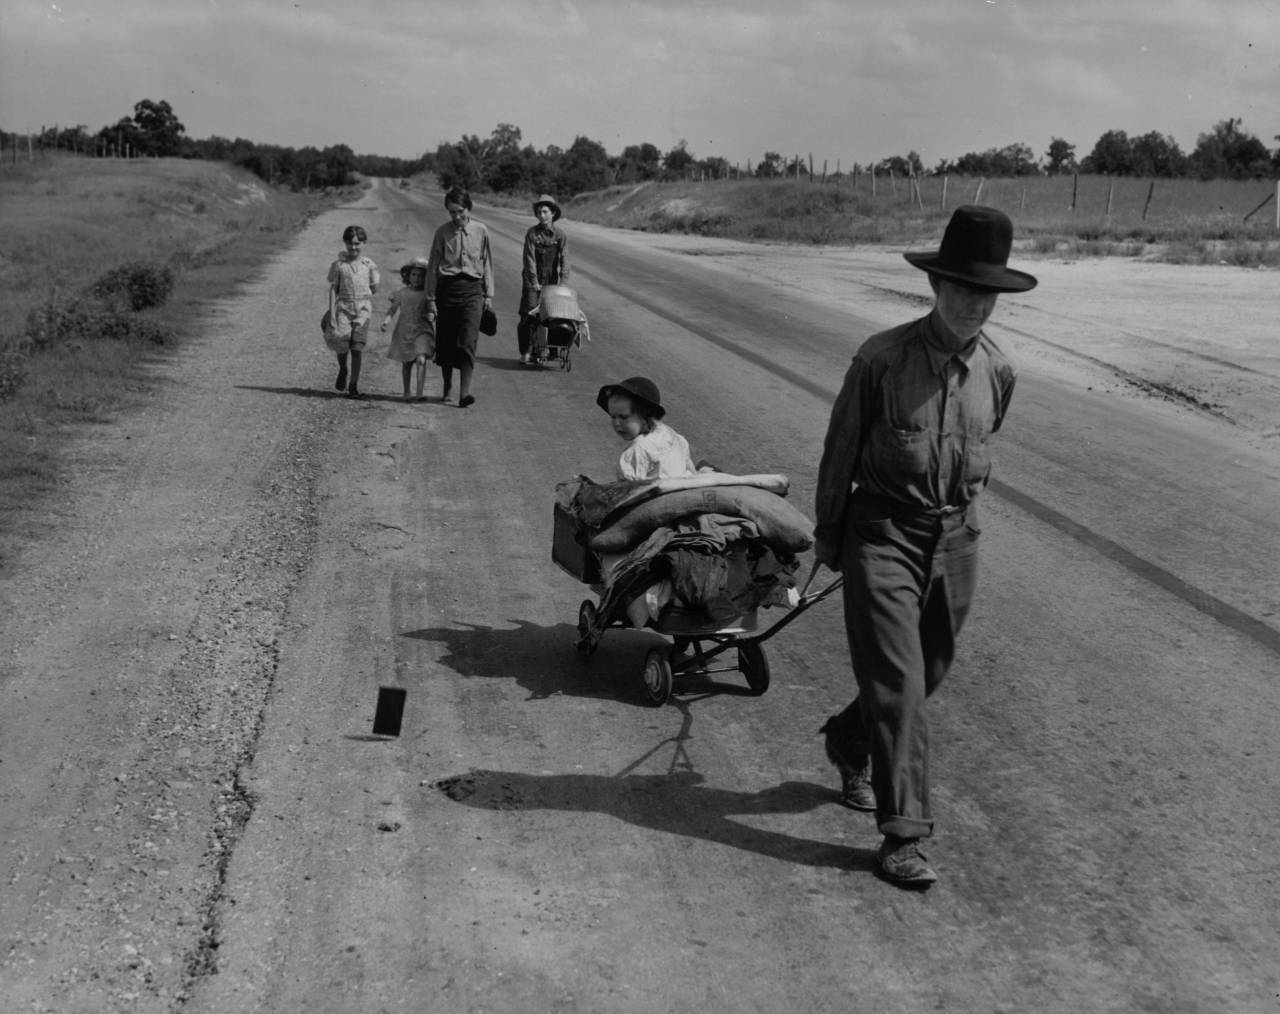 June 1938: A family in Pittsburg County, Oklahoma is forced to leave their home during the Great Depression, due to a serious drought in the region. (Photo by Dorothea Lange/Keystone/Getty Images)